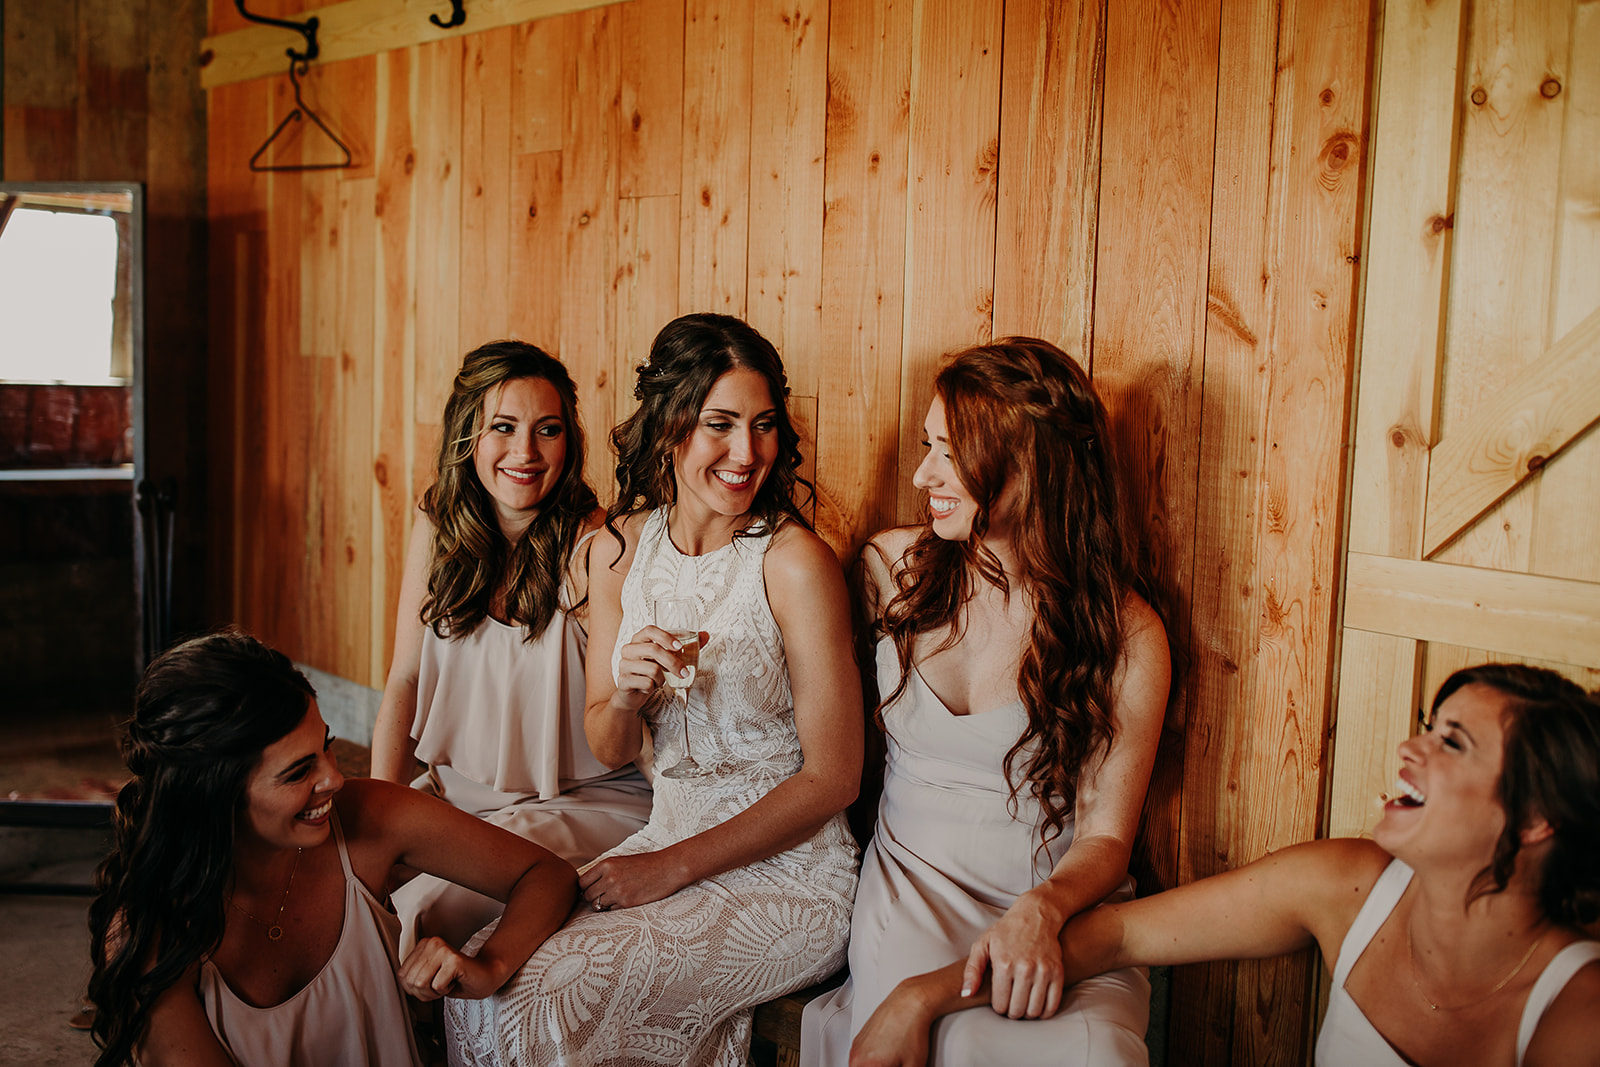 mount-vernon-wedding-salt-box-barn-amanda-riley-megan-gallagher-photography-2_(188_of_215).jpg